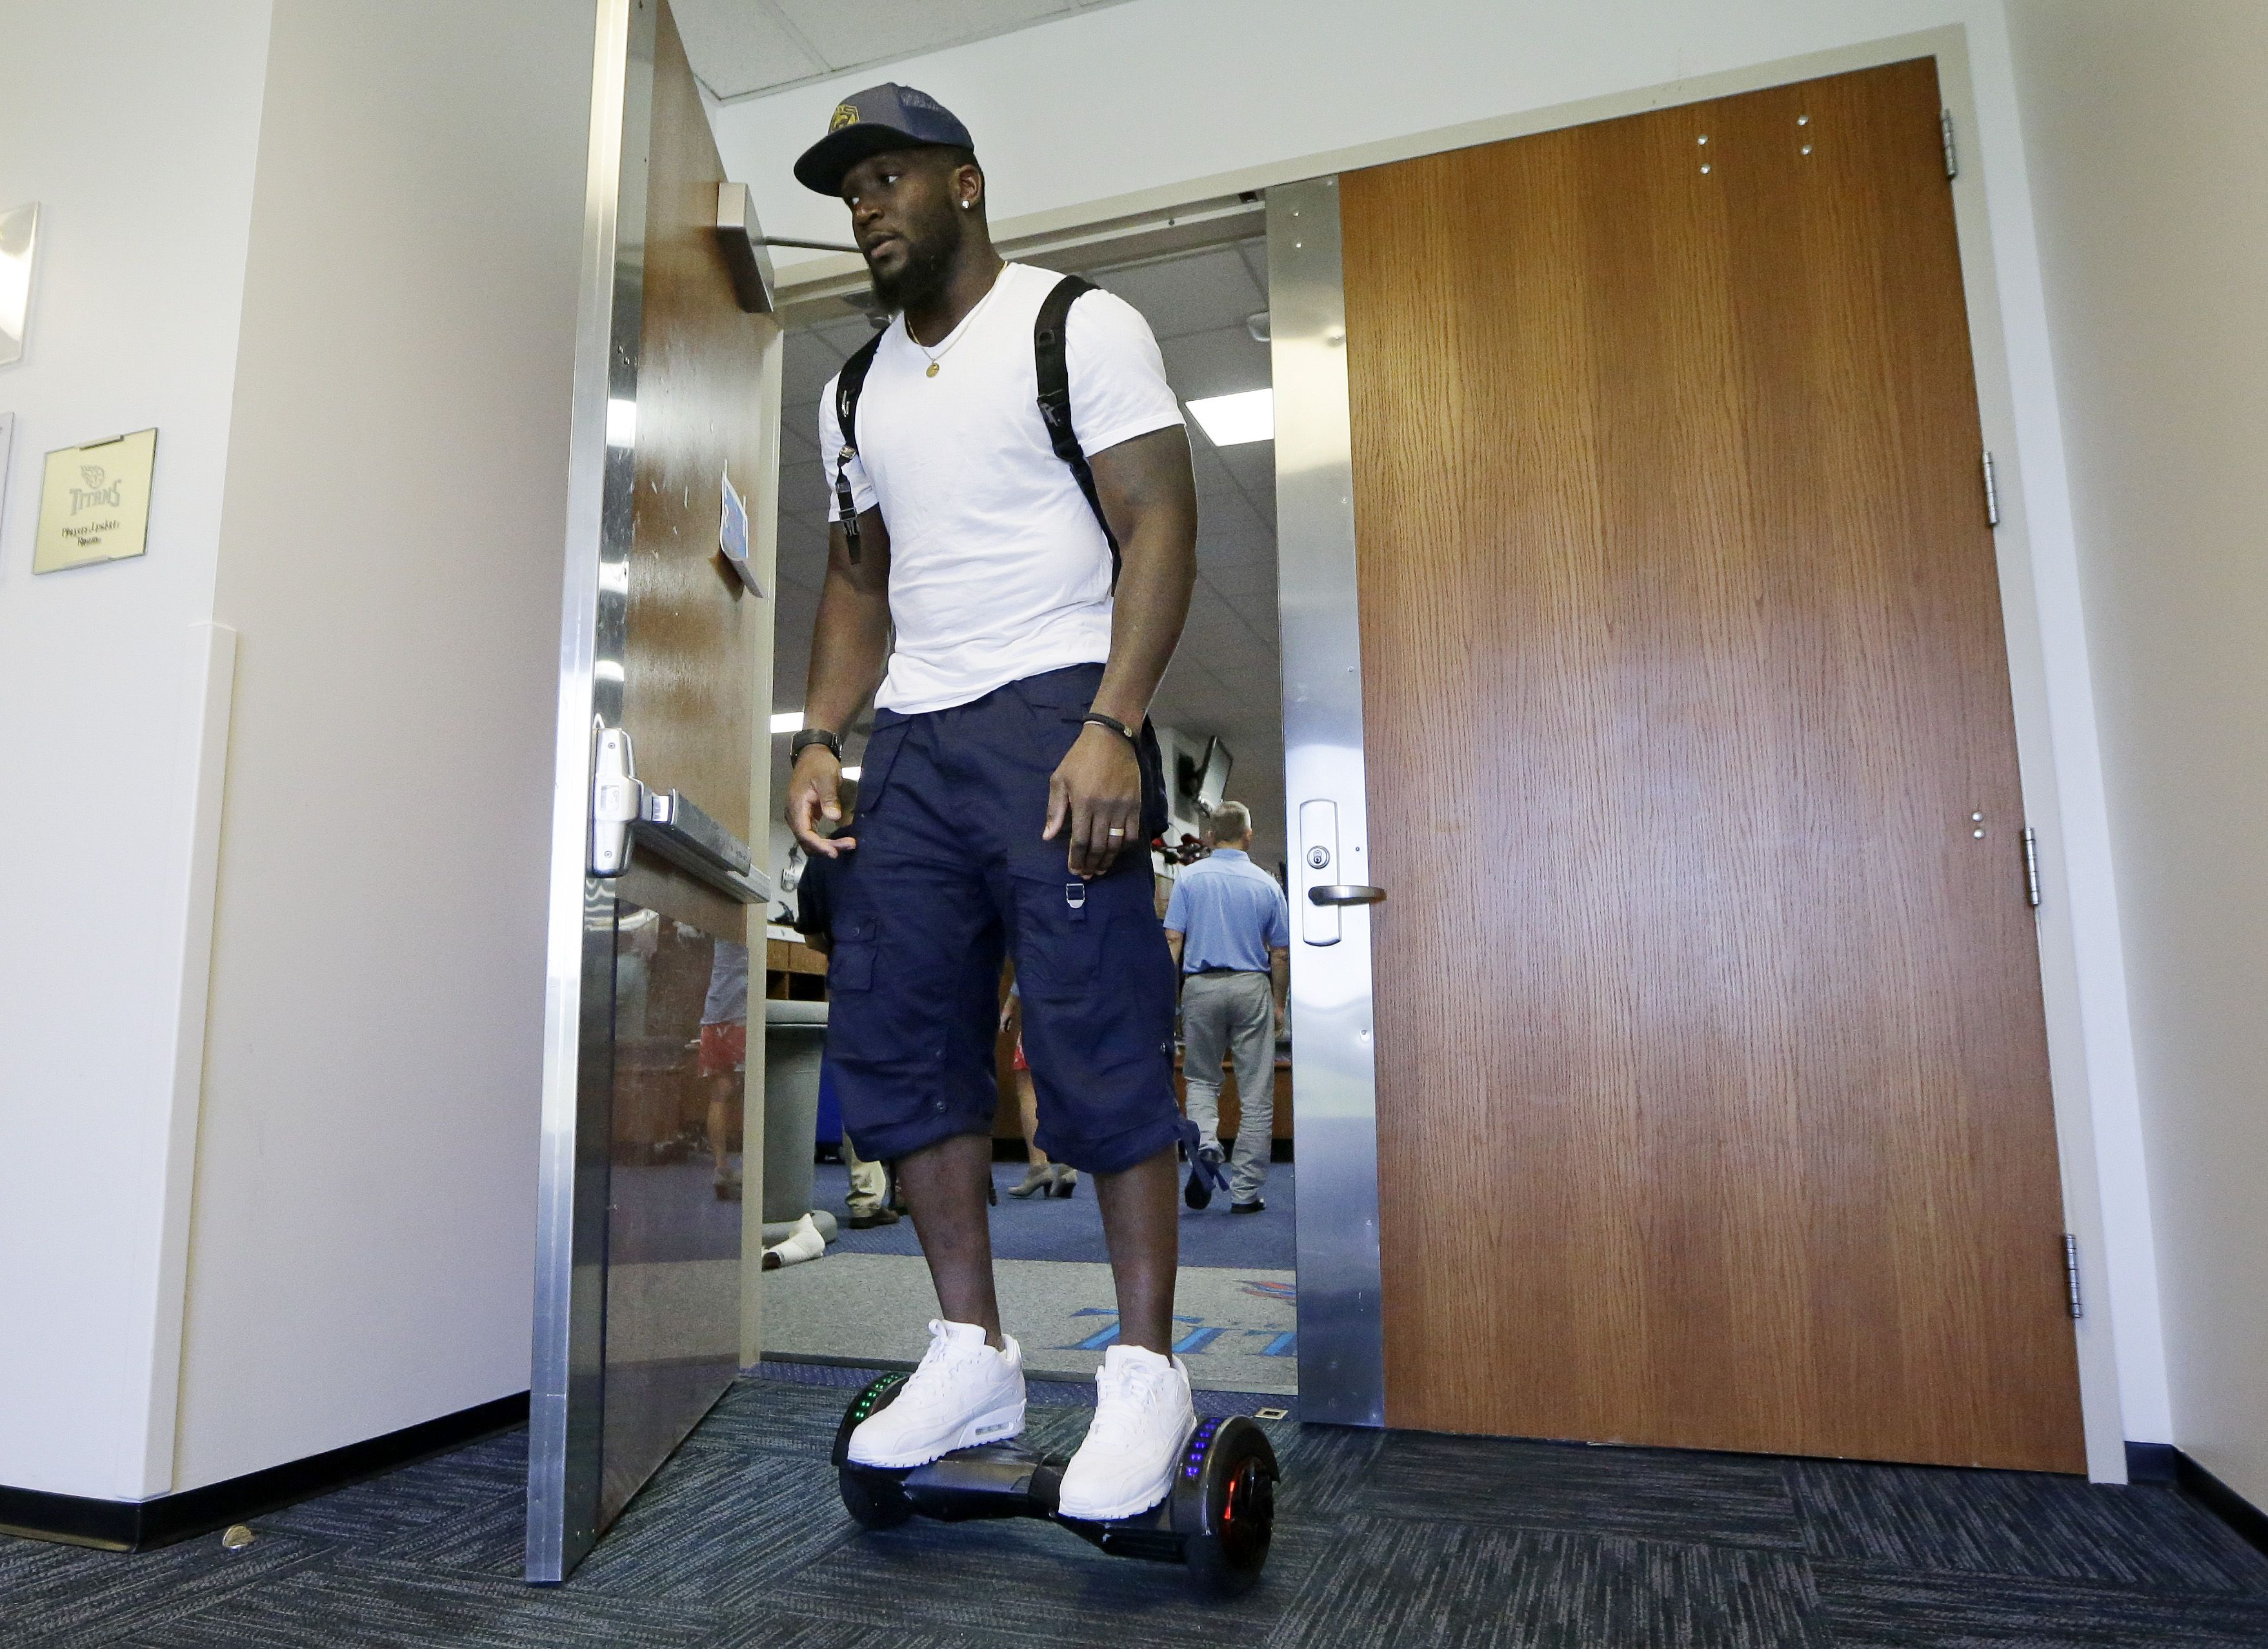 Tennessee Titans linebacker Brian Orakpo takes us back to